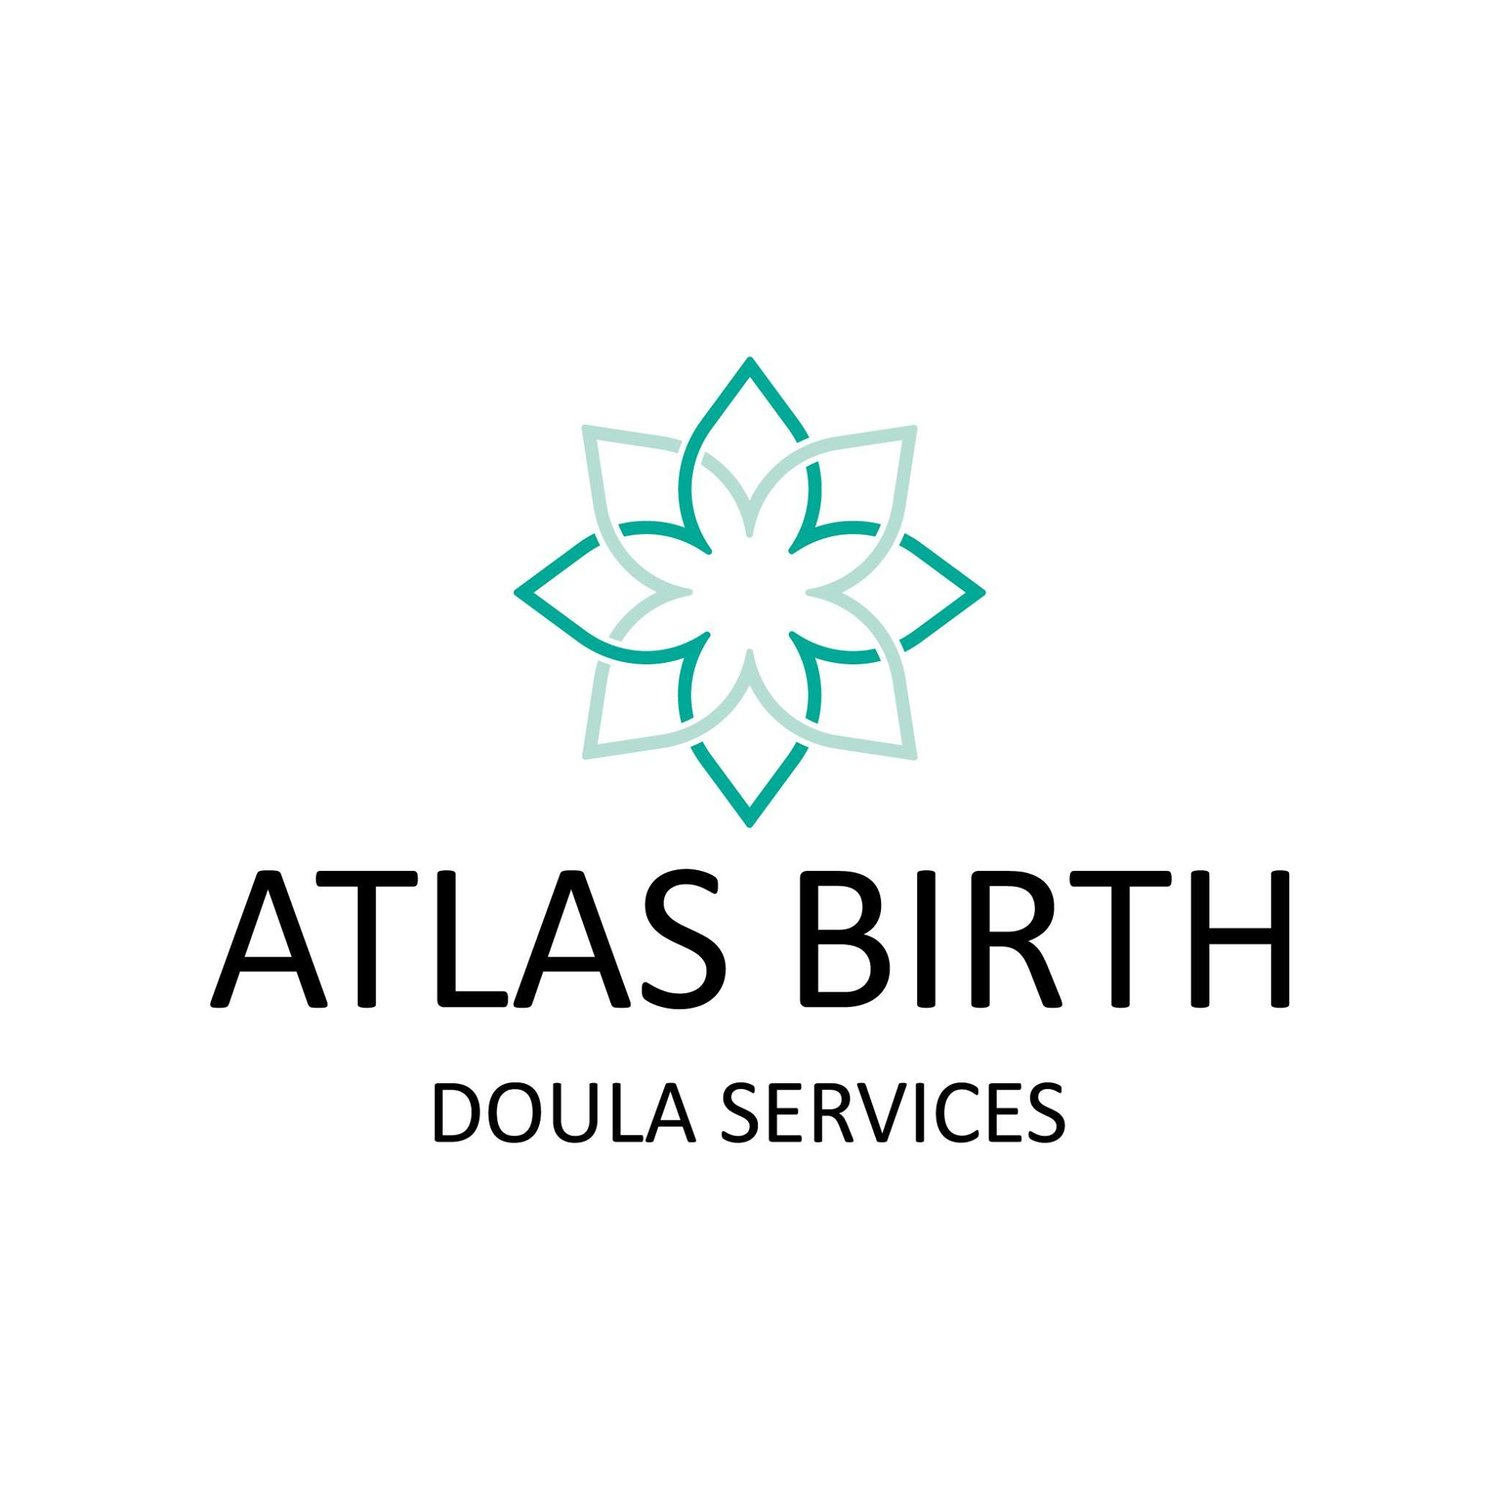 Atlas Birth - Doula